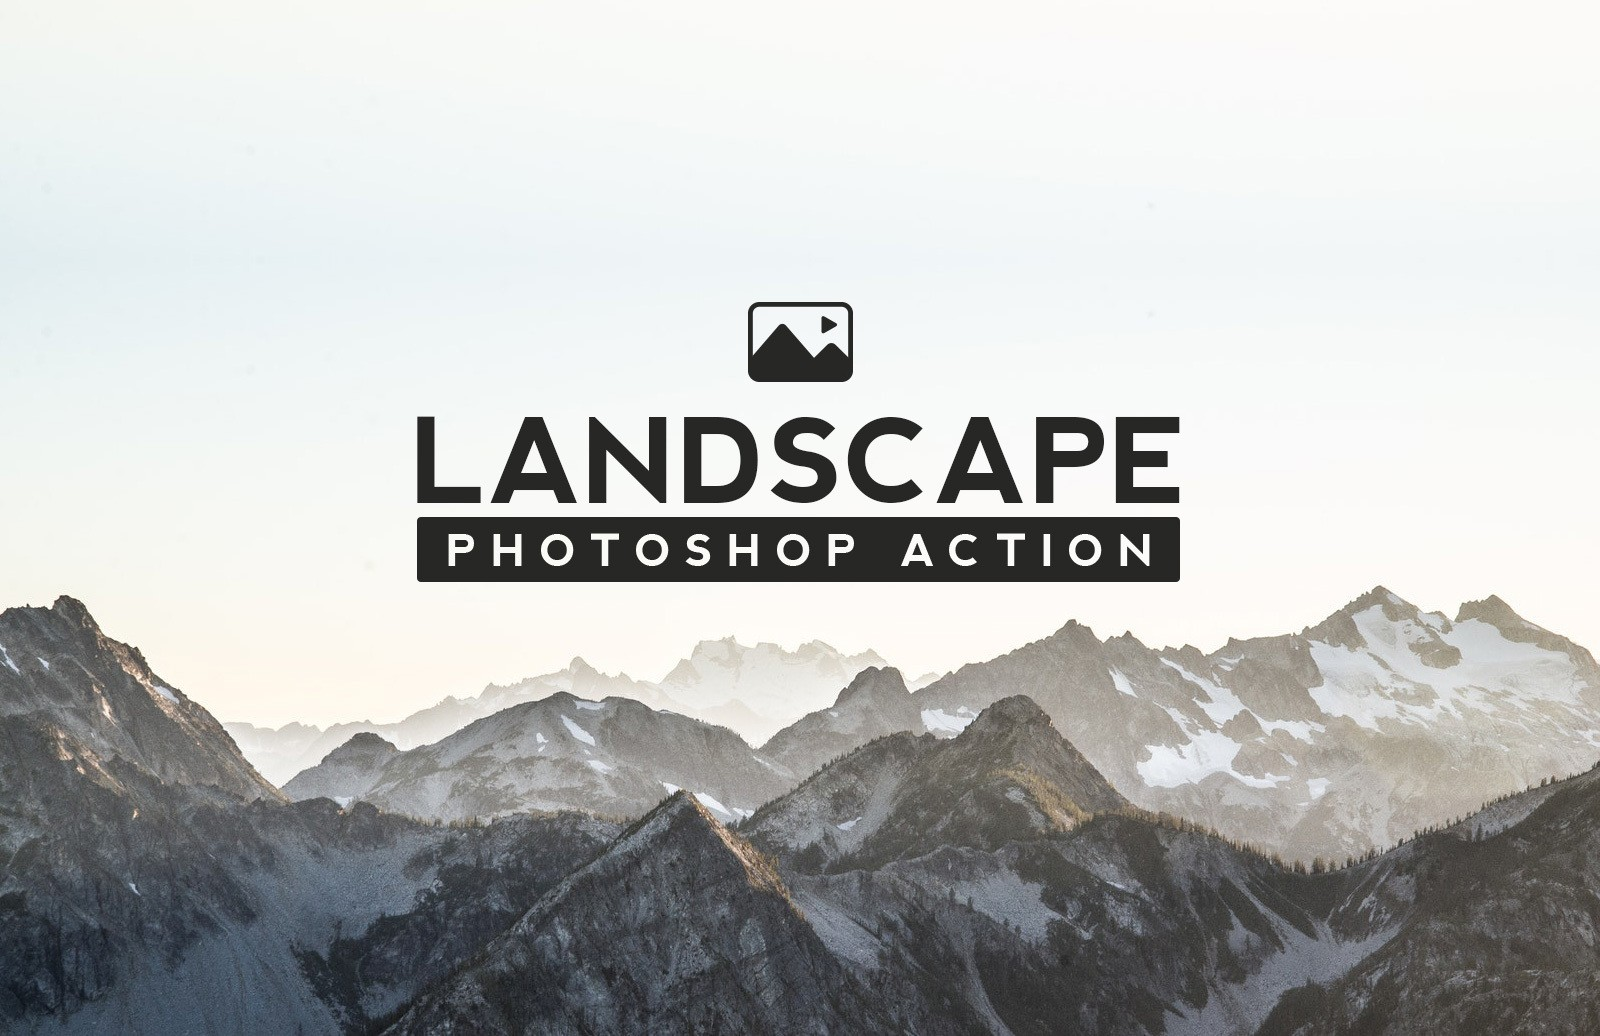 Landscape Photoshop Action